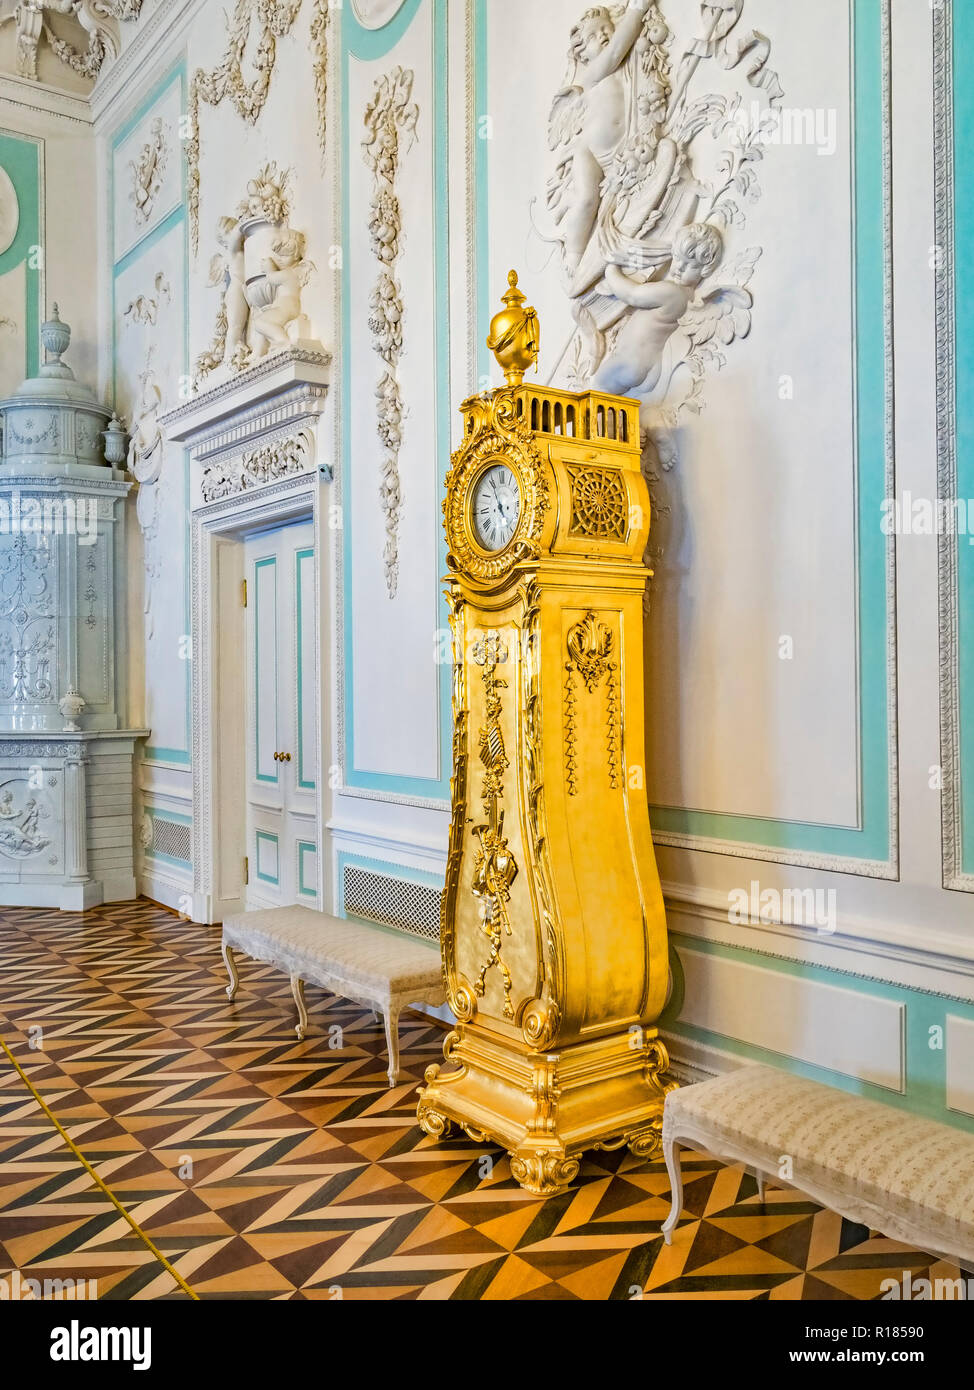 18 September 2018: St Petersburg, Russia - Gilded clock in the Peterhof Grand Palace. Stock Photo